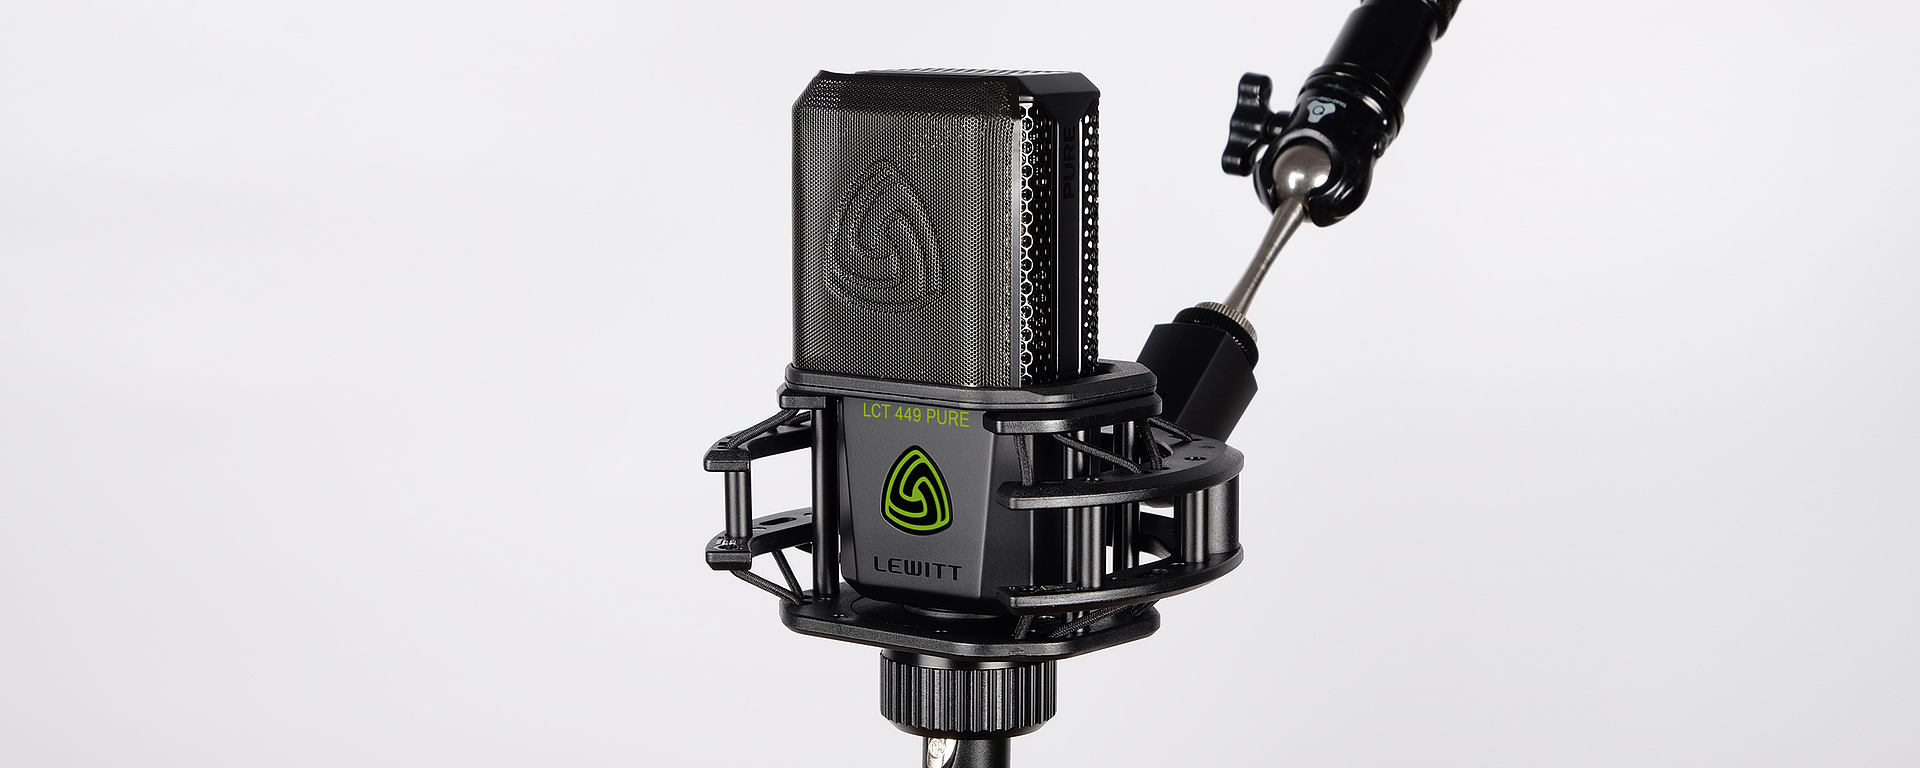 LCT 449 PURE in shockmount with magnetic pop-filter